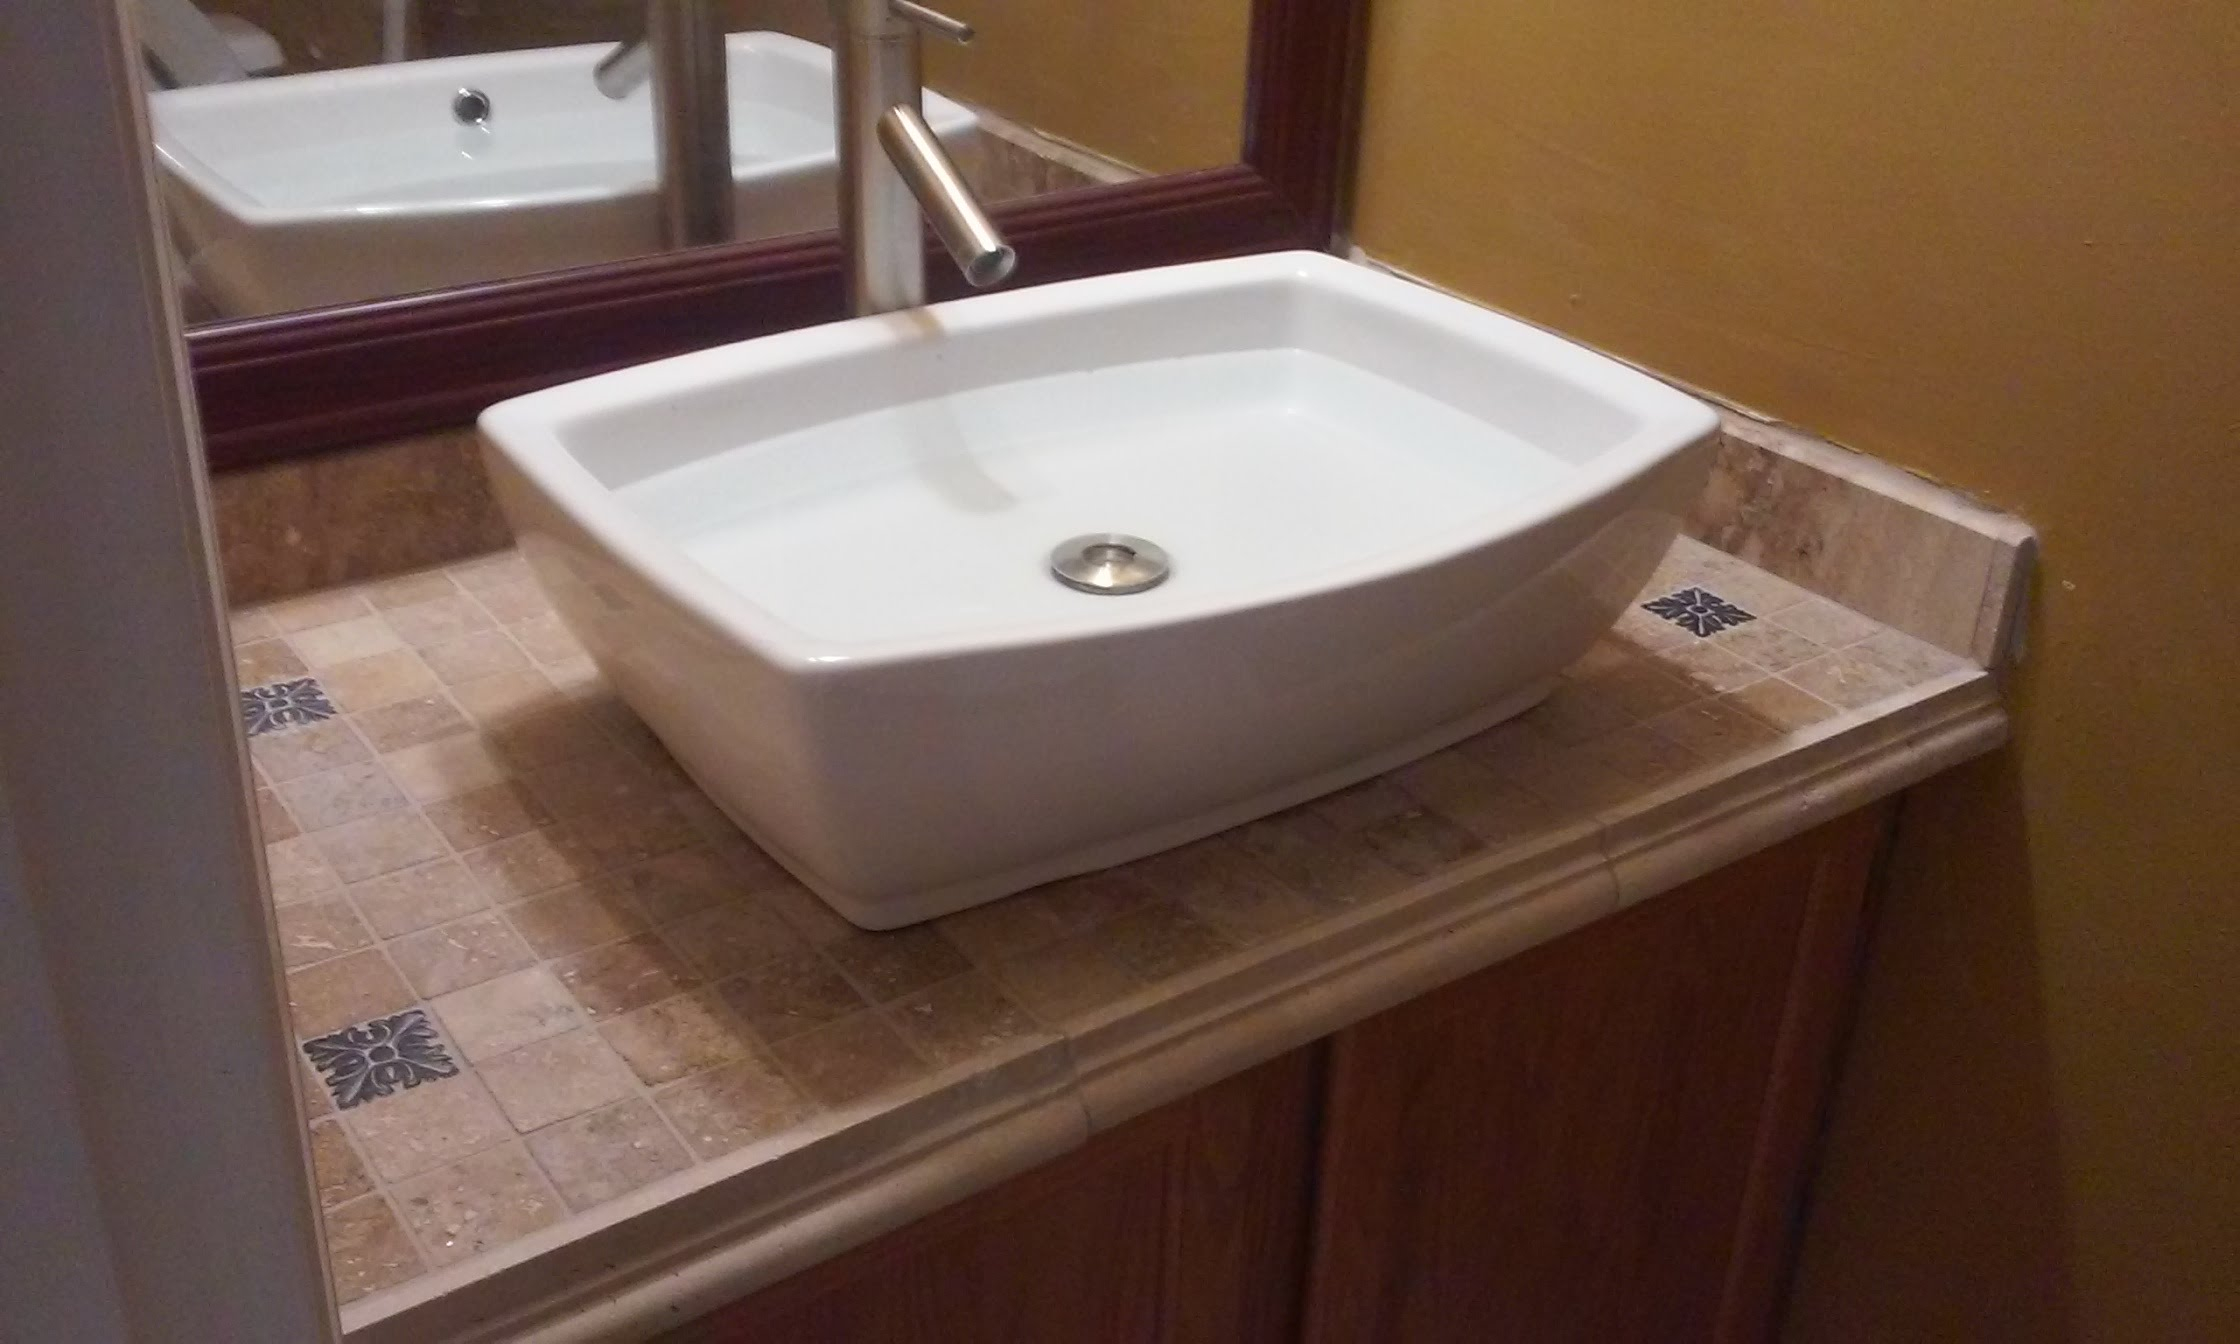 Lovely Vanity Top Tiled & Top Mounted Sink - Youtube throughout Bathroom Vanity With Top